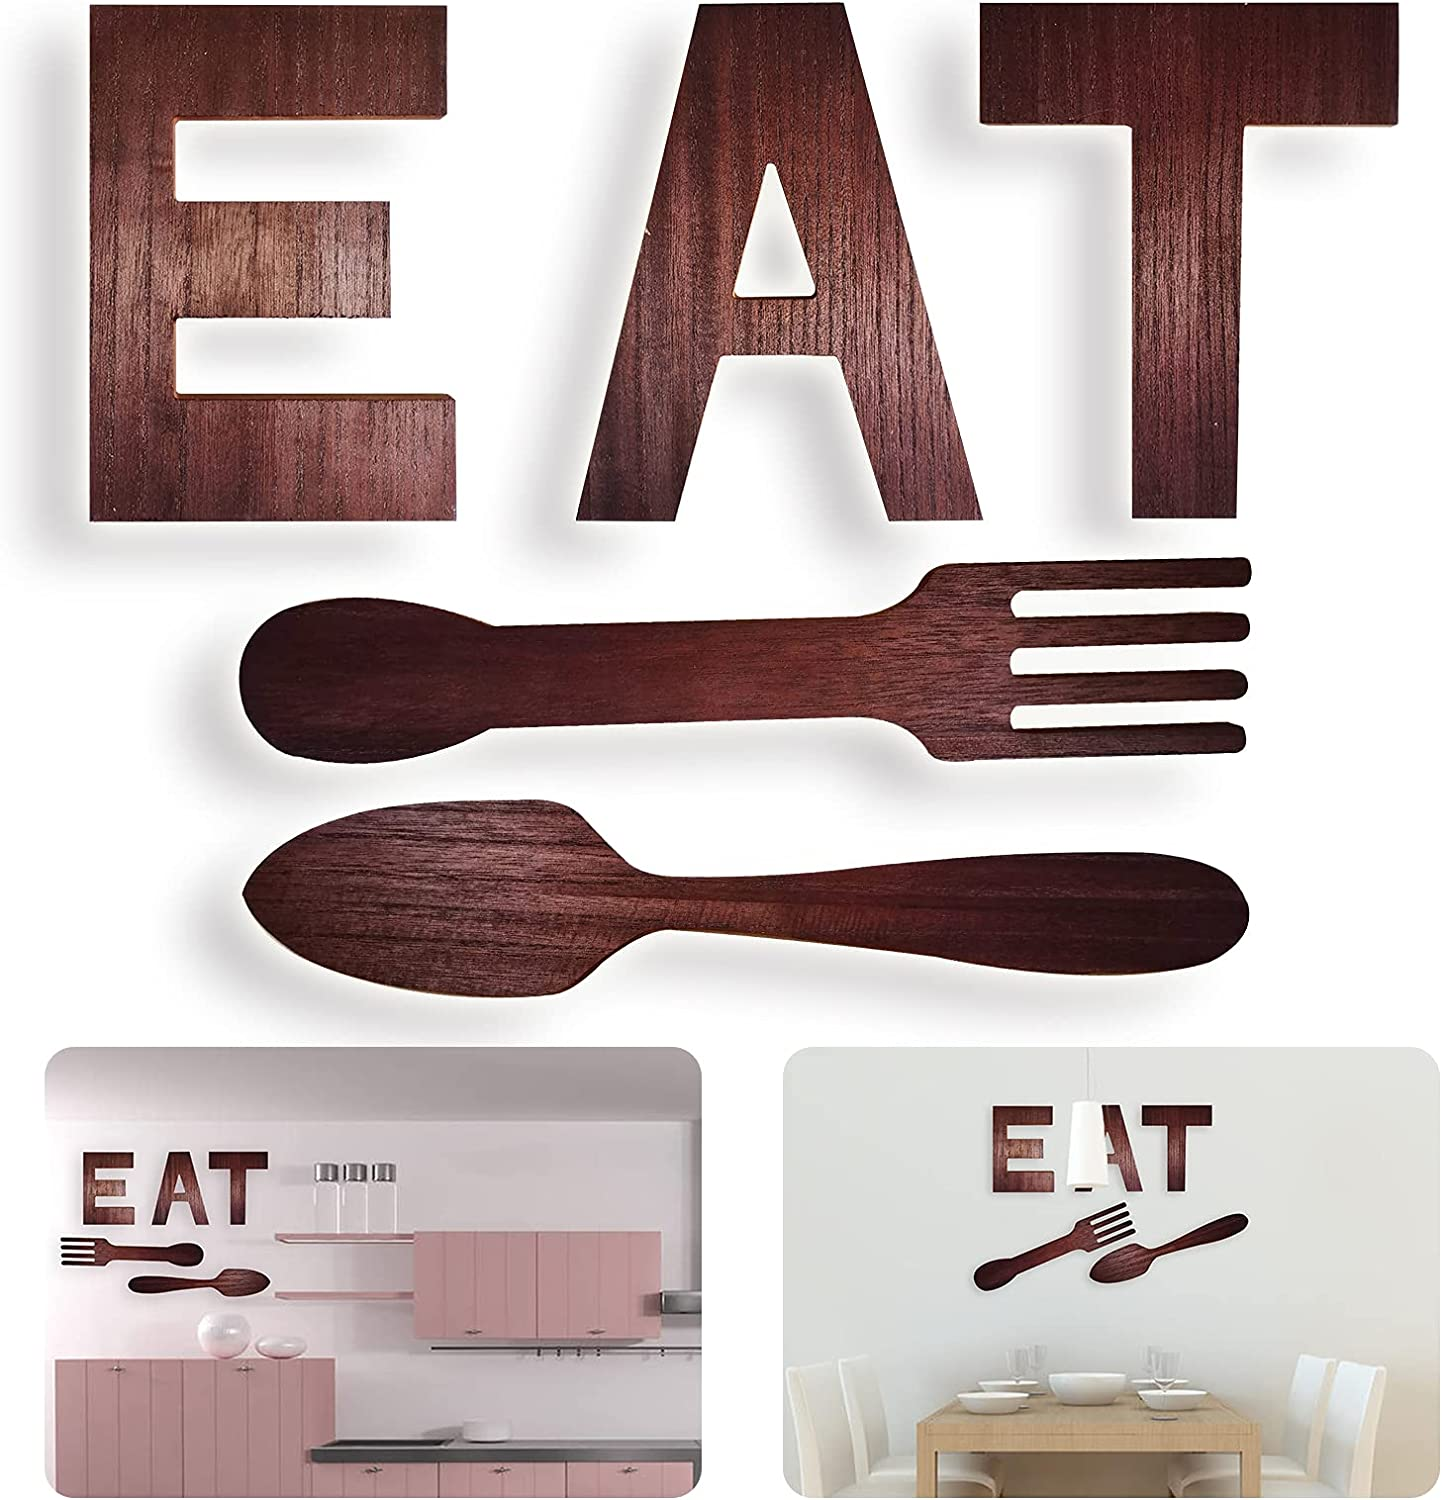 EAT Sign Fork Spoon Kitchen Wall Hanging Decor Rustic Wood EAT Letters Decoration for Kitchen Dining Room Home Country Farmhouse Wall Wooden Art Decoration (Vintage wood brown)